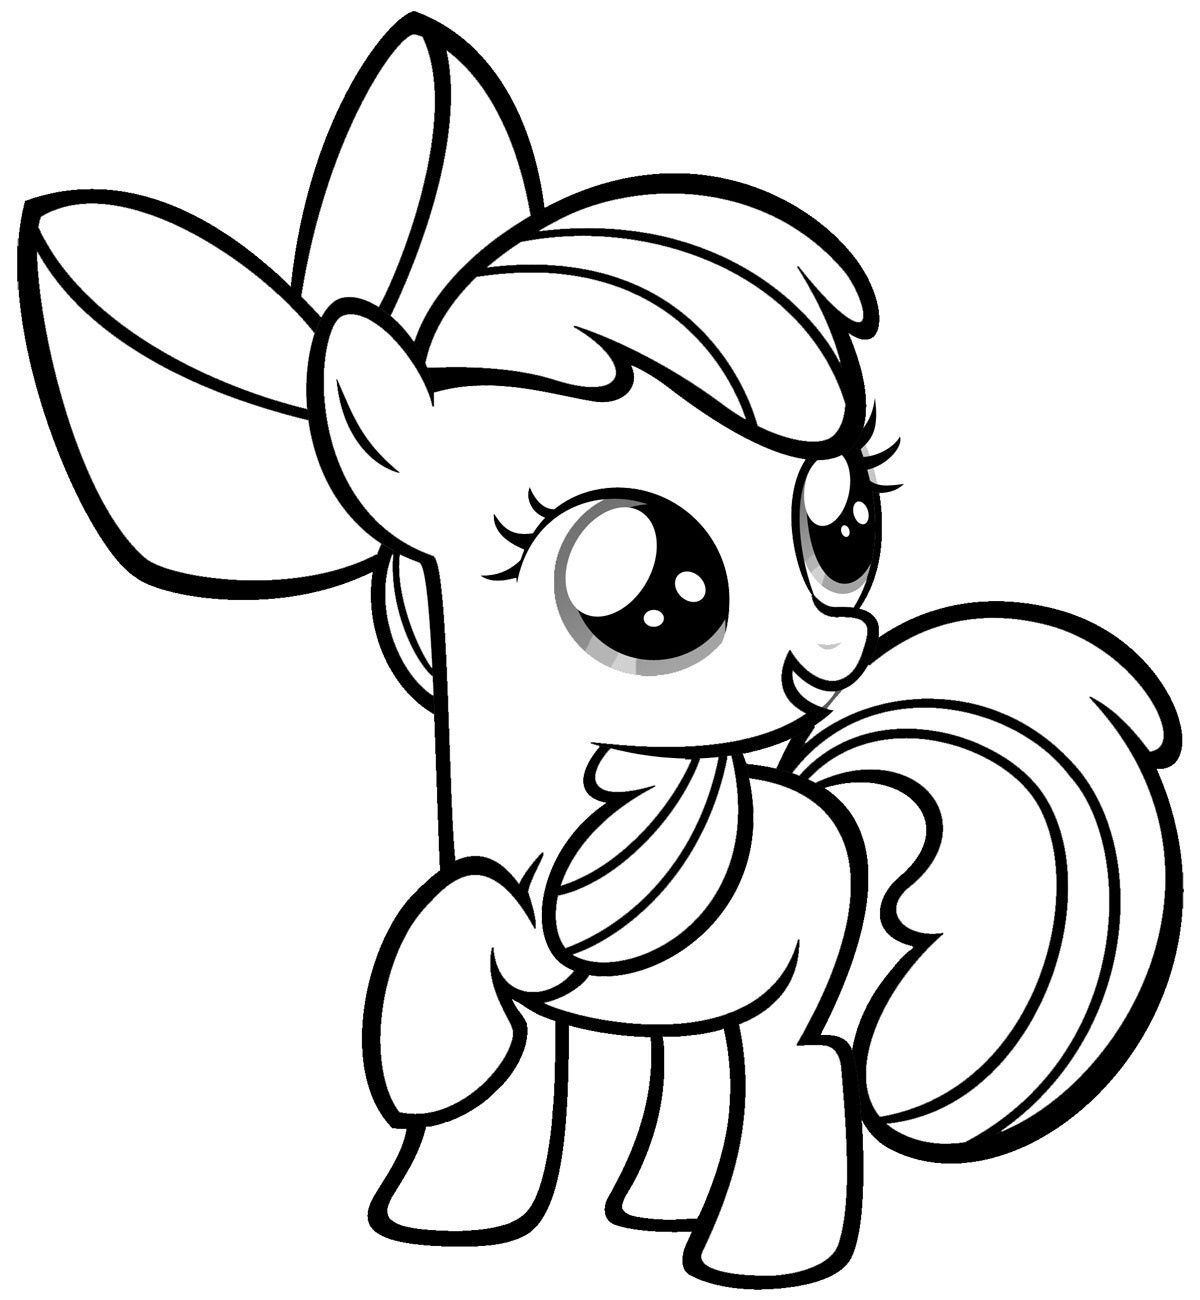 Color Pages Online My Little Pony Coloring Pages Online Free - Free Printable My Little Pony Coloring Pages